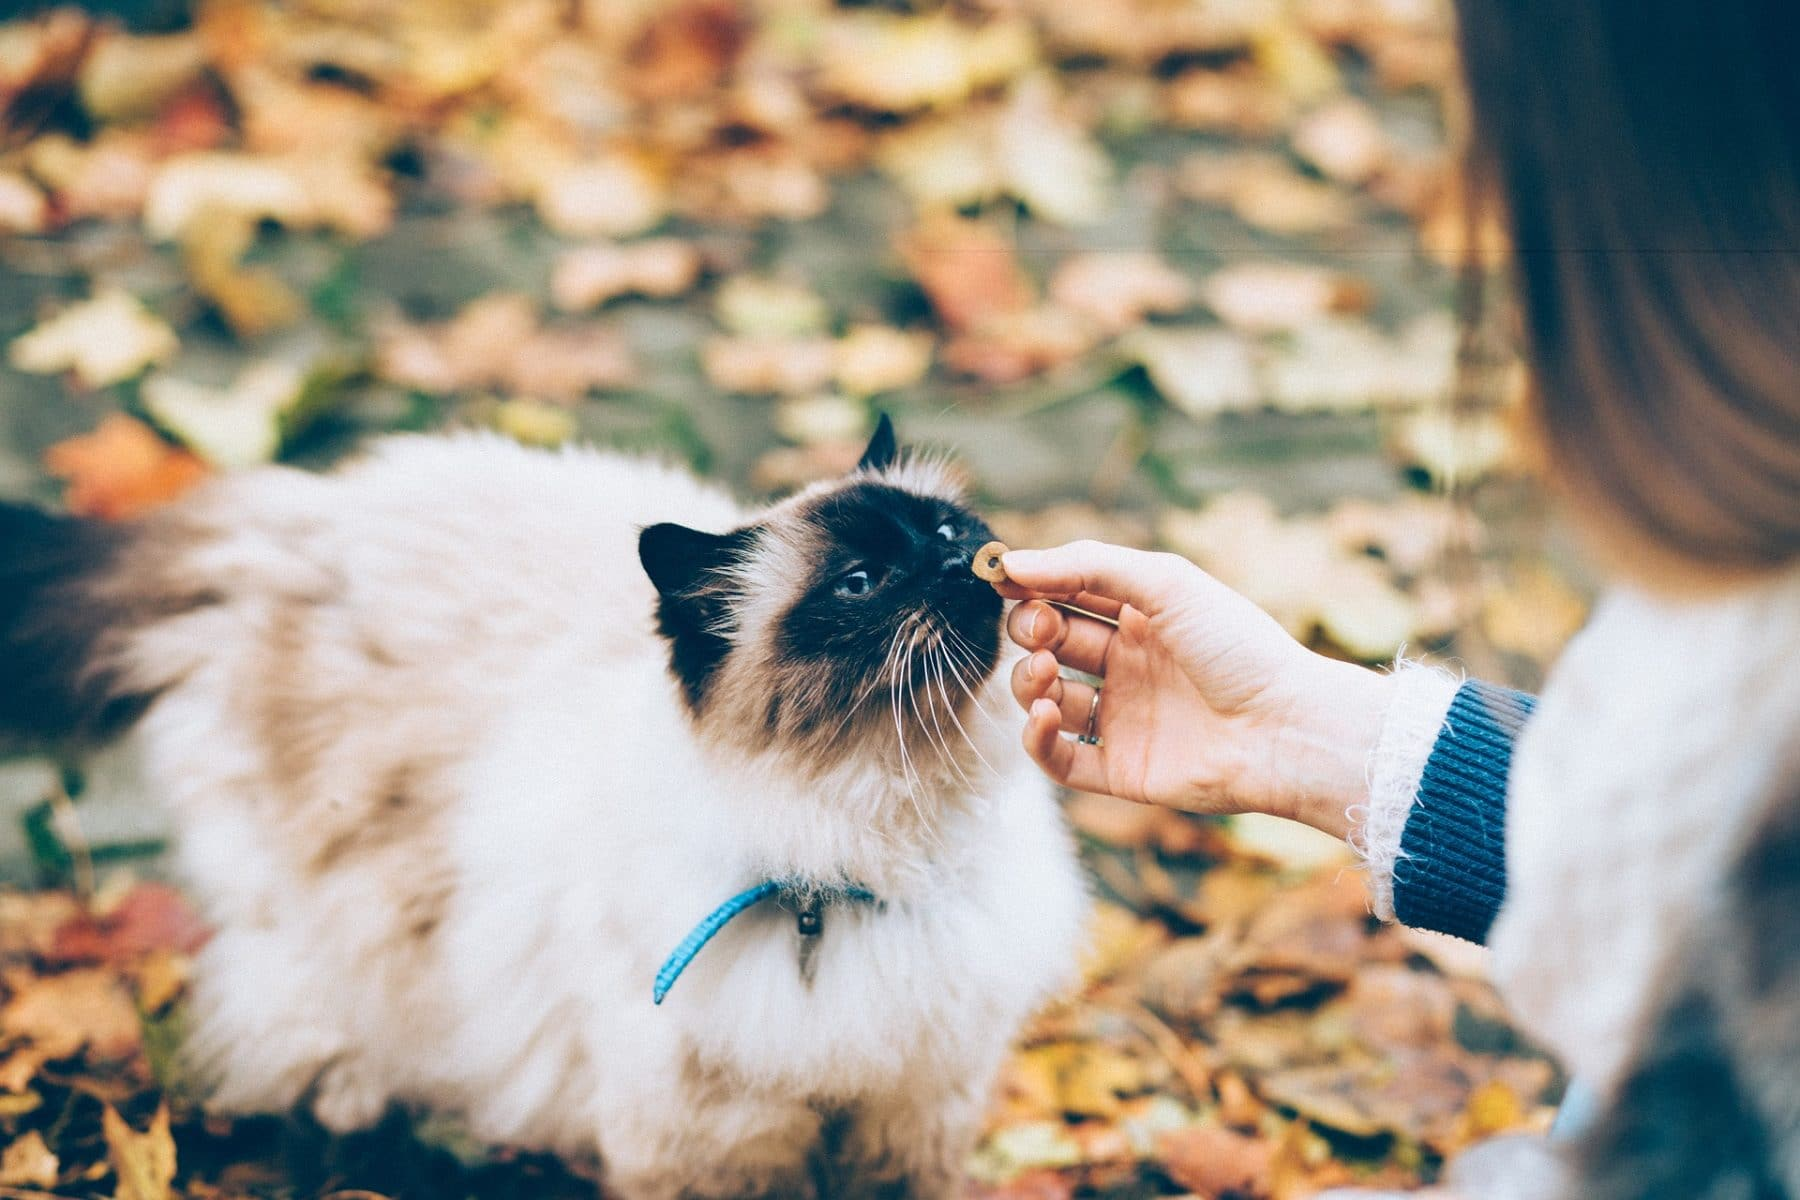 Cat eating a treat in autumn